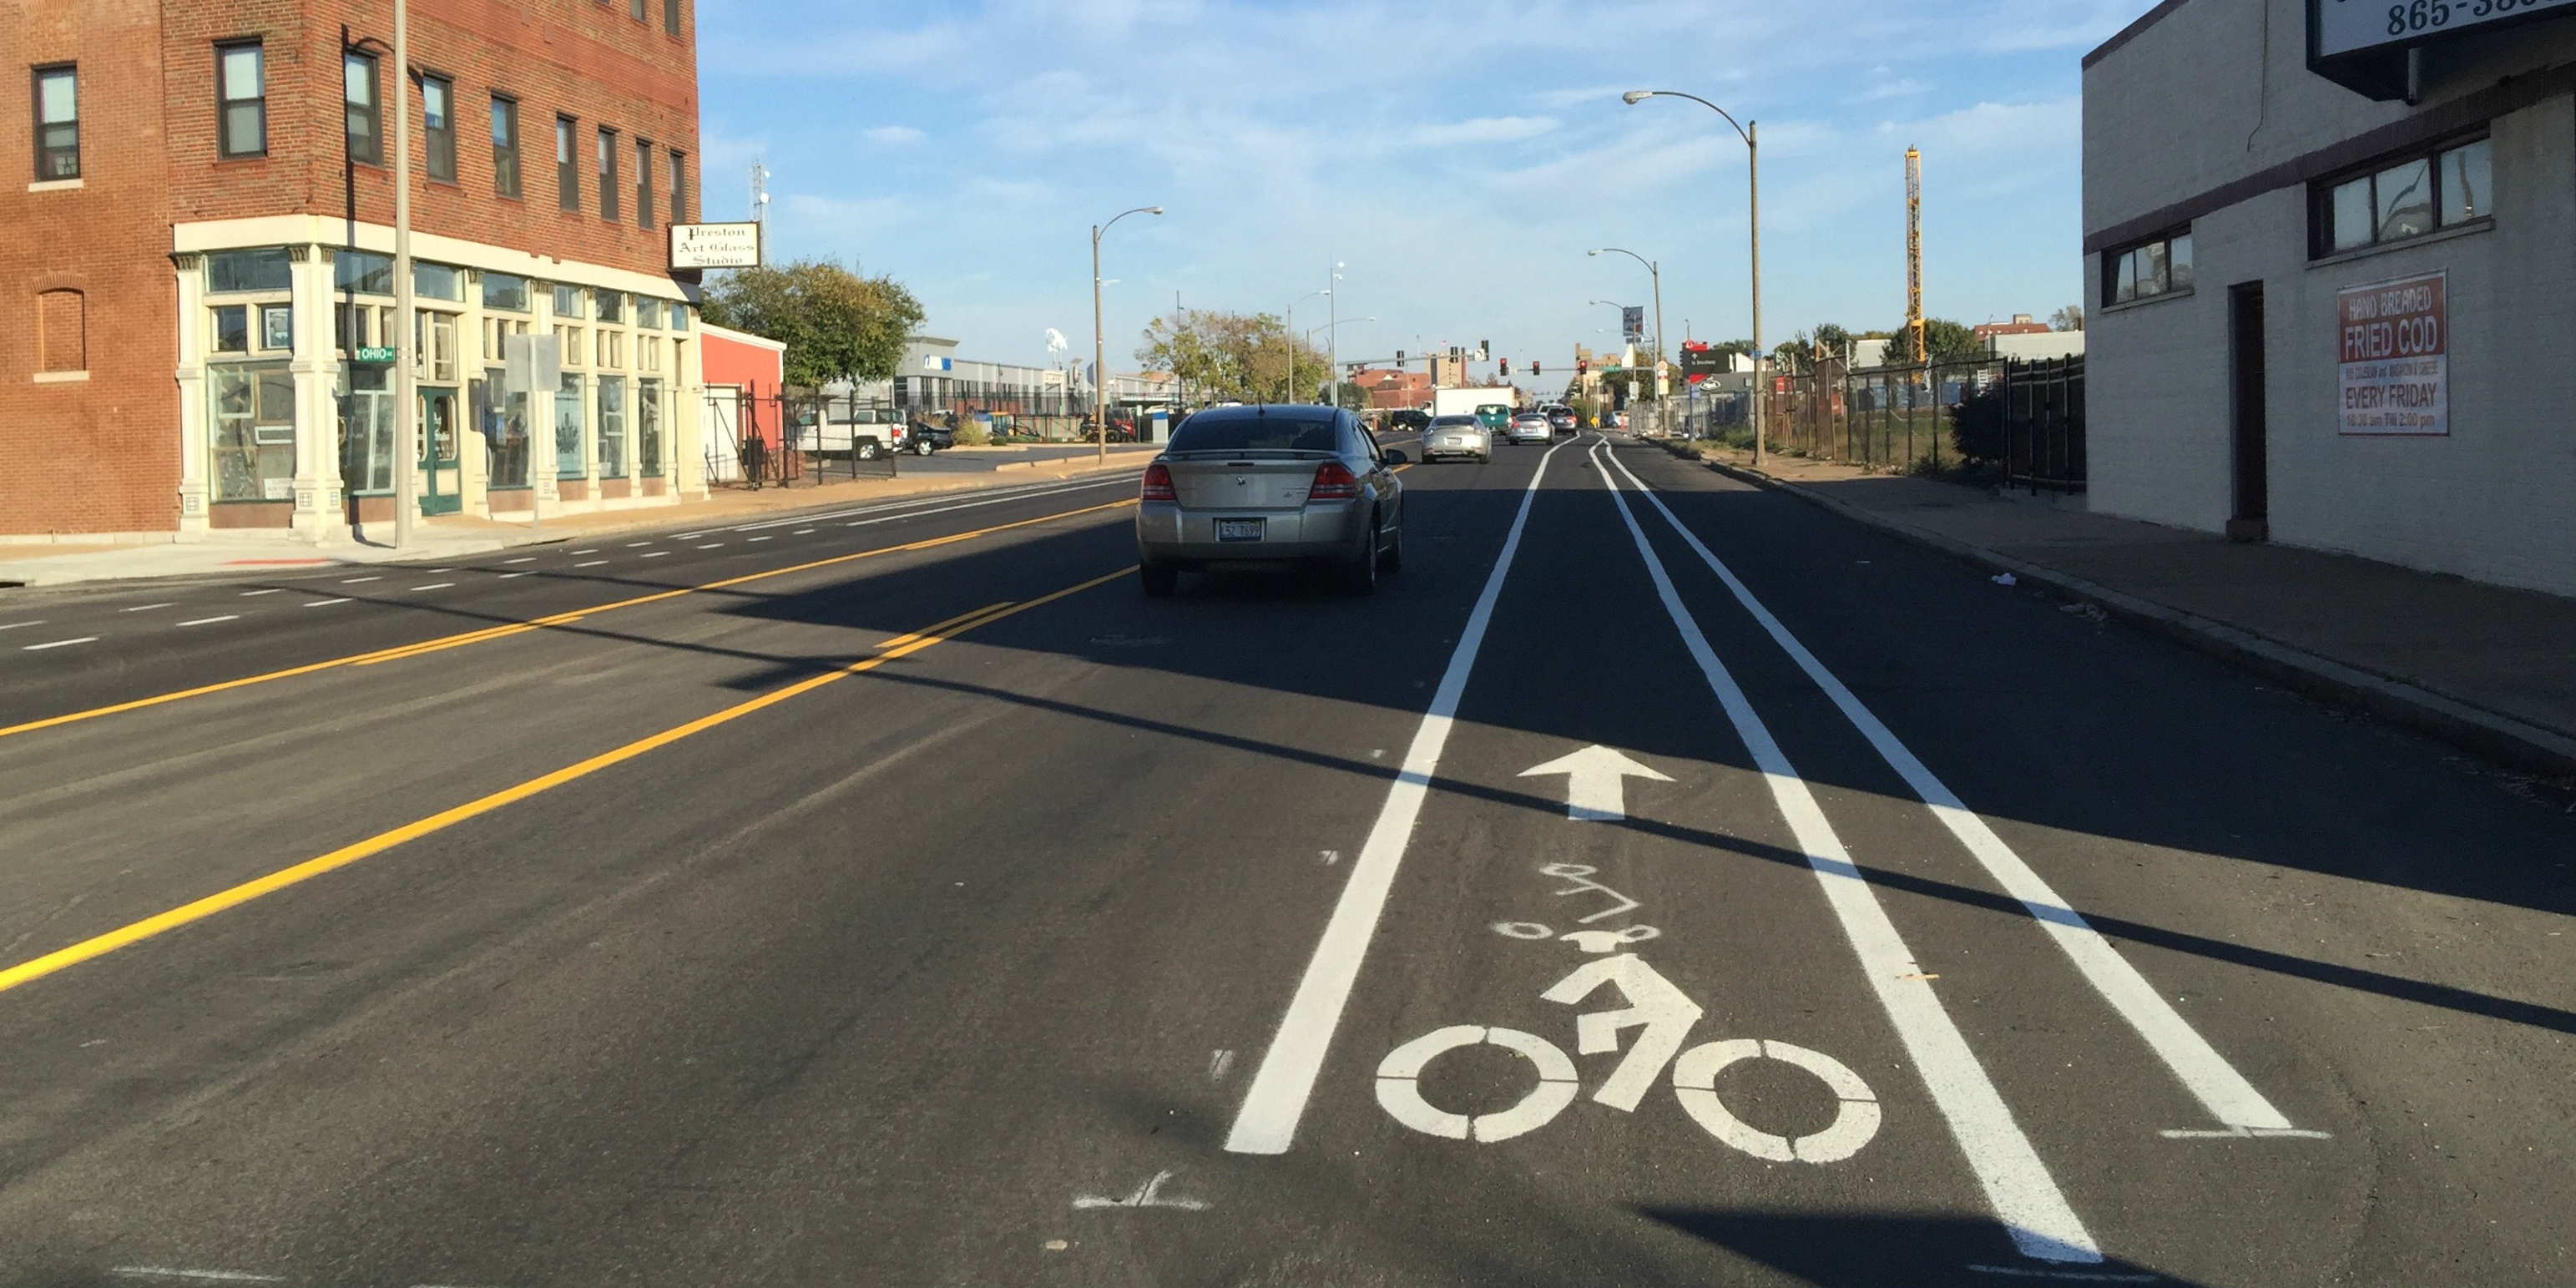 Chouteau Bike Lanes Finally Appear, Continue Hit-and-miss Planning